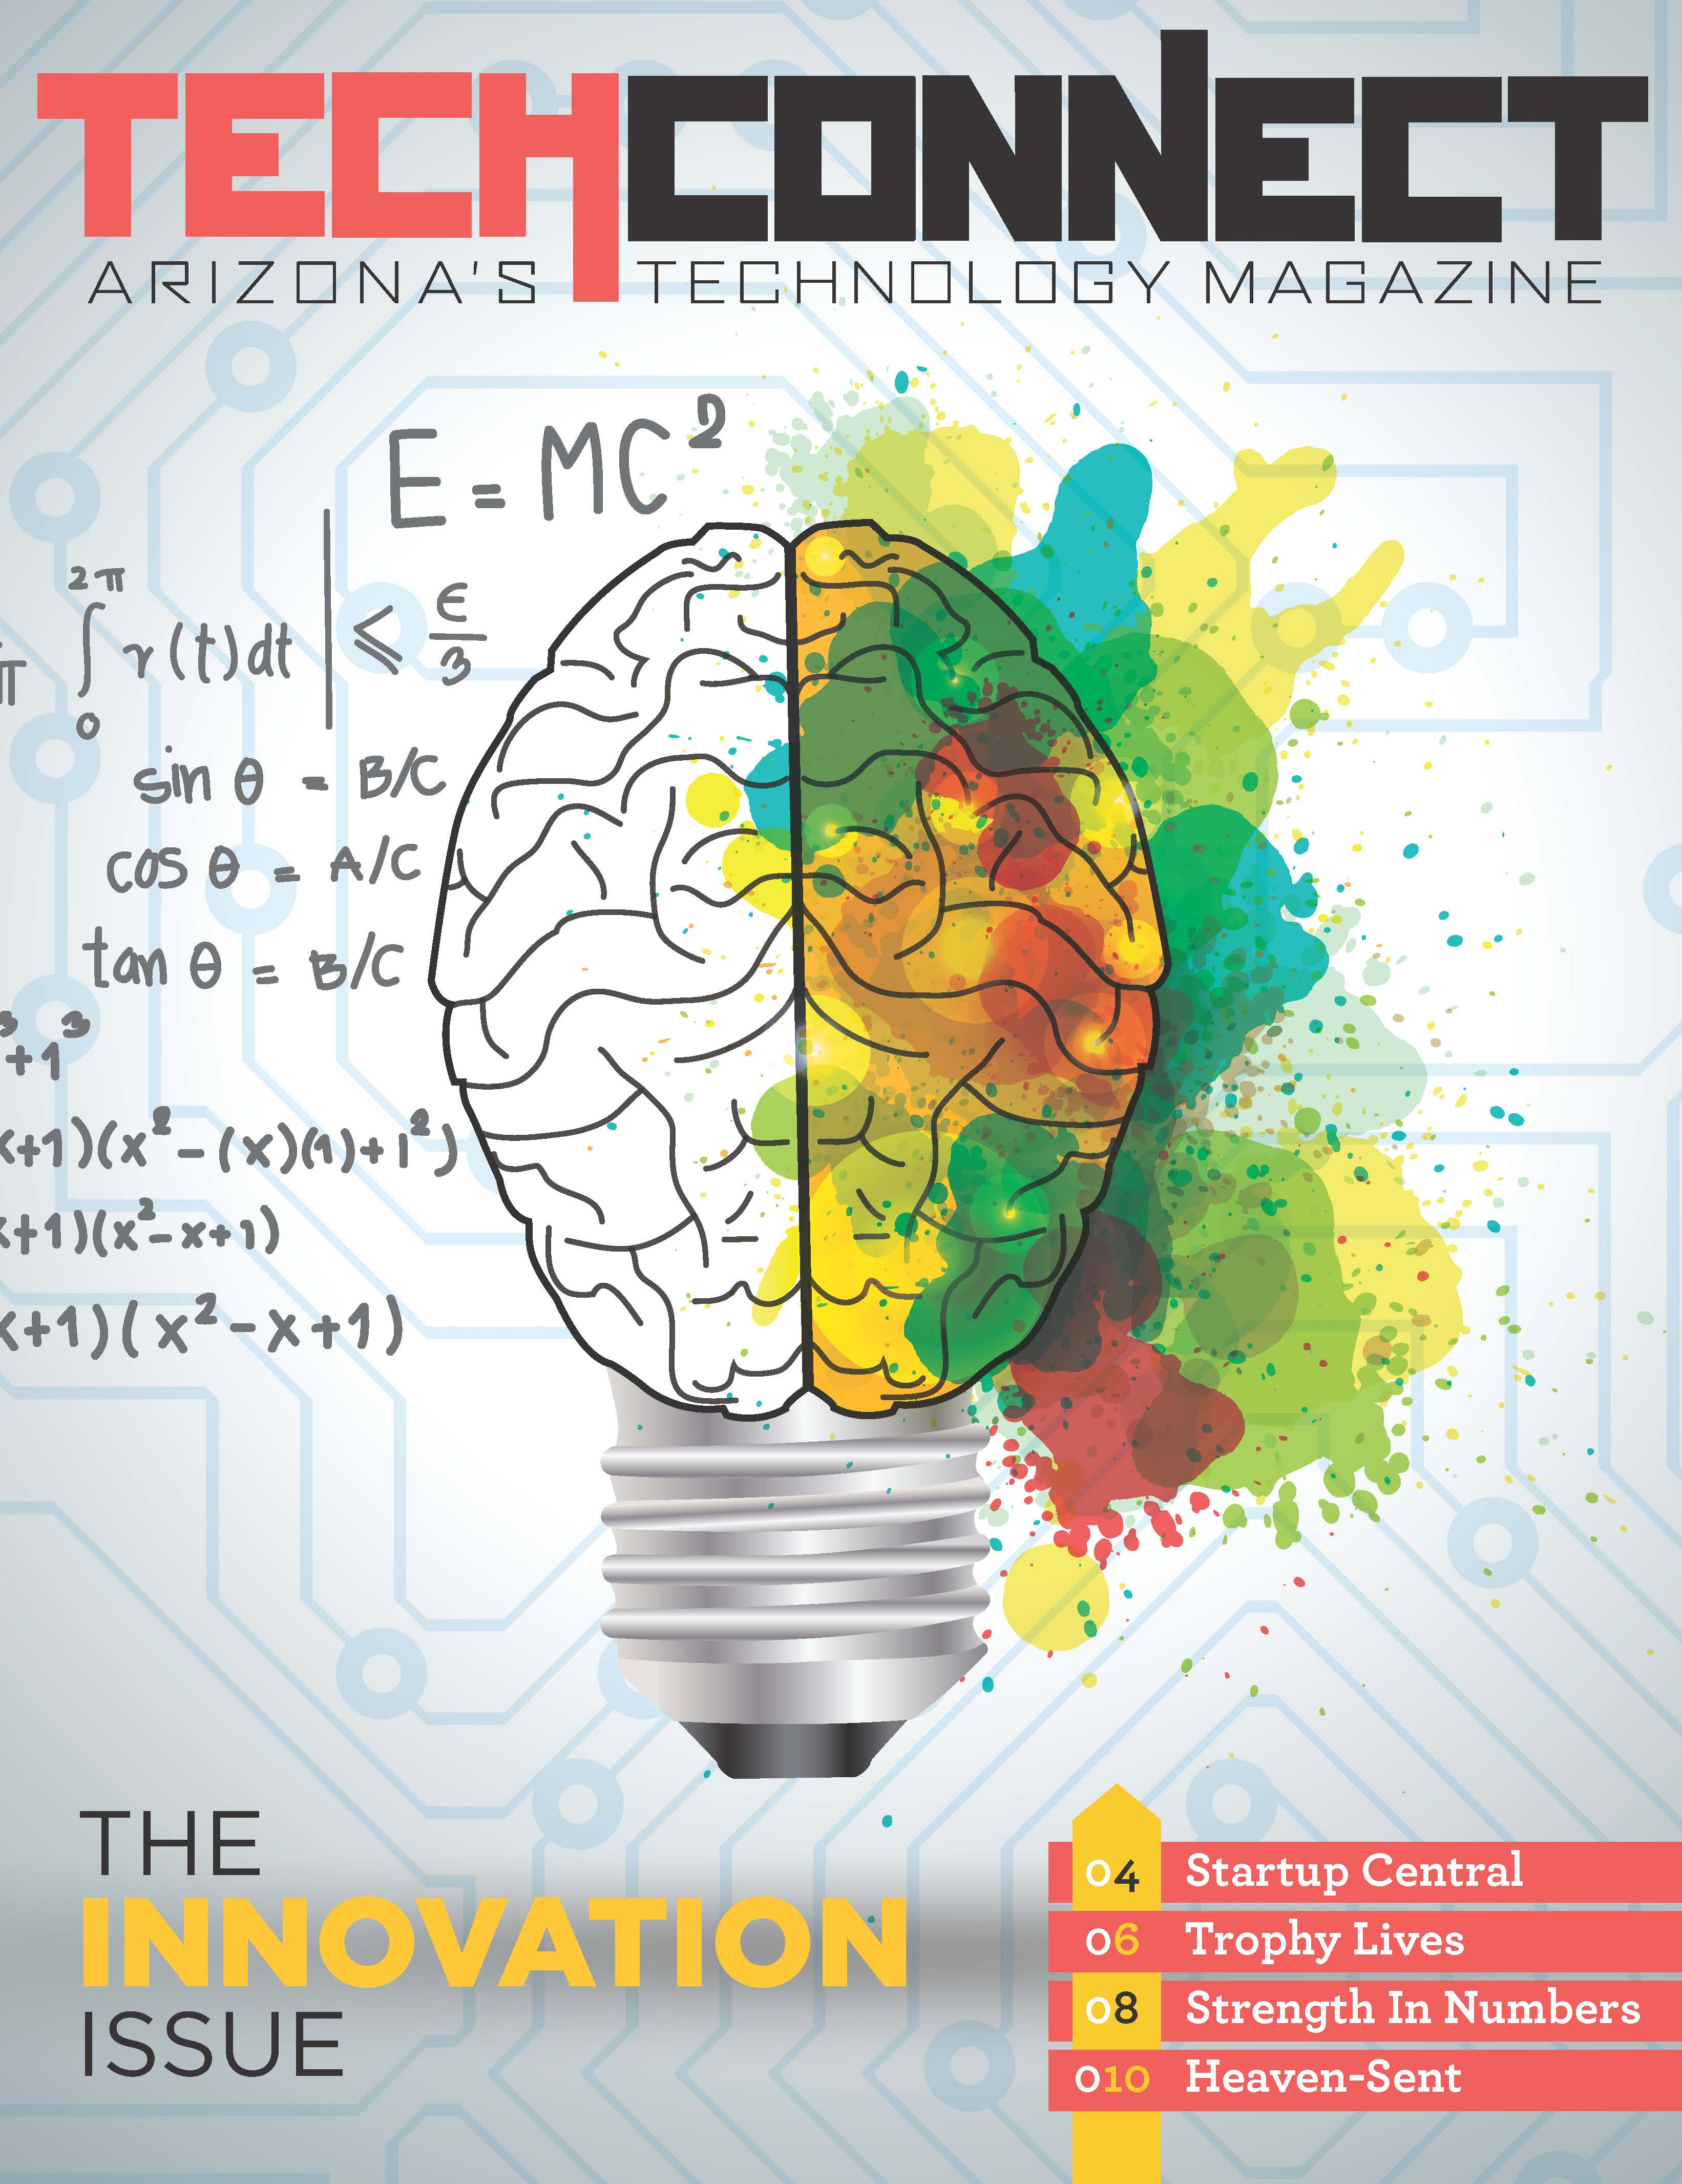 TechConnect e-Mag Explores Arizona's Growing Innovation Ecosystem